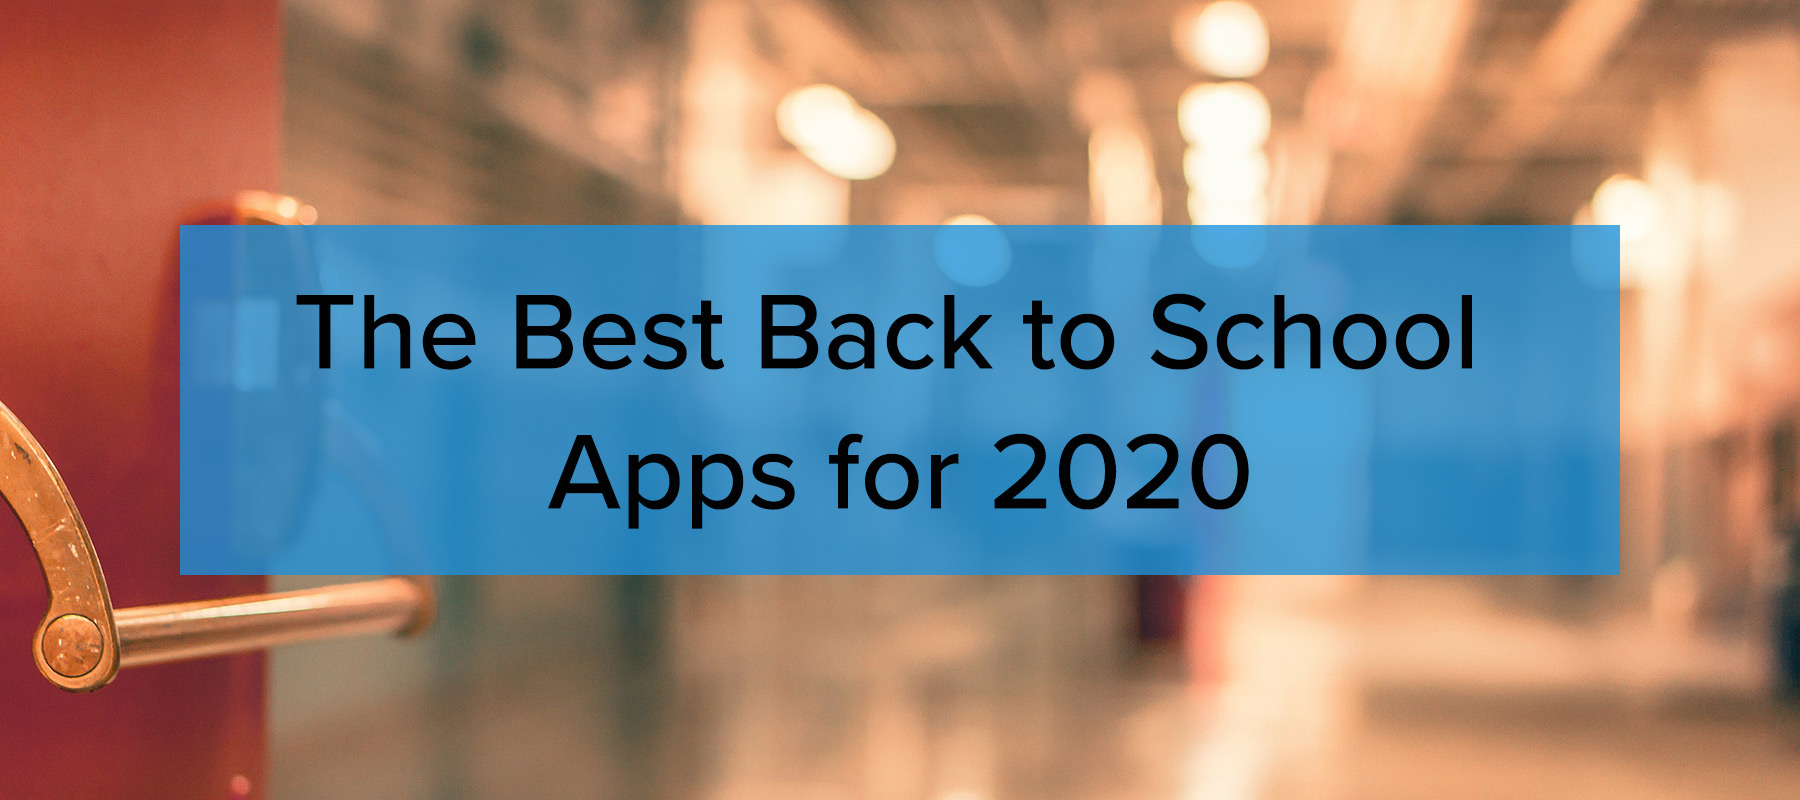 the best back to schools apps for 2020